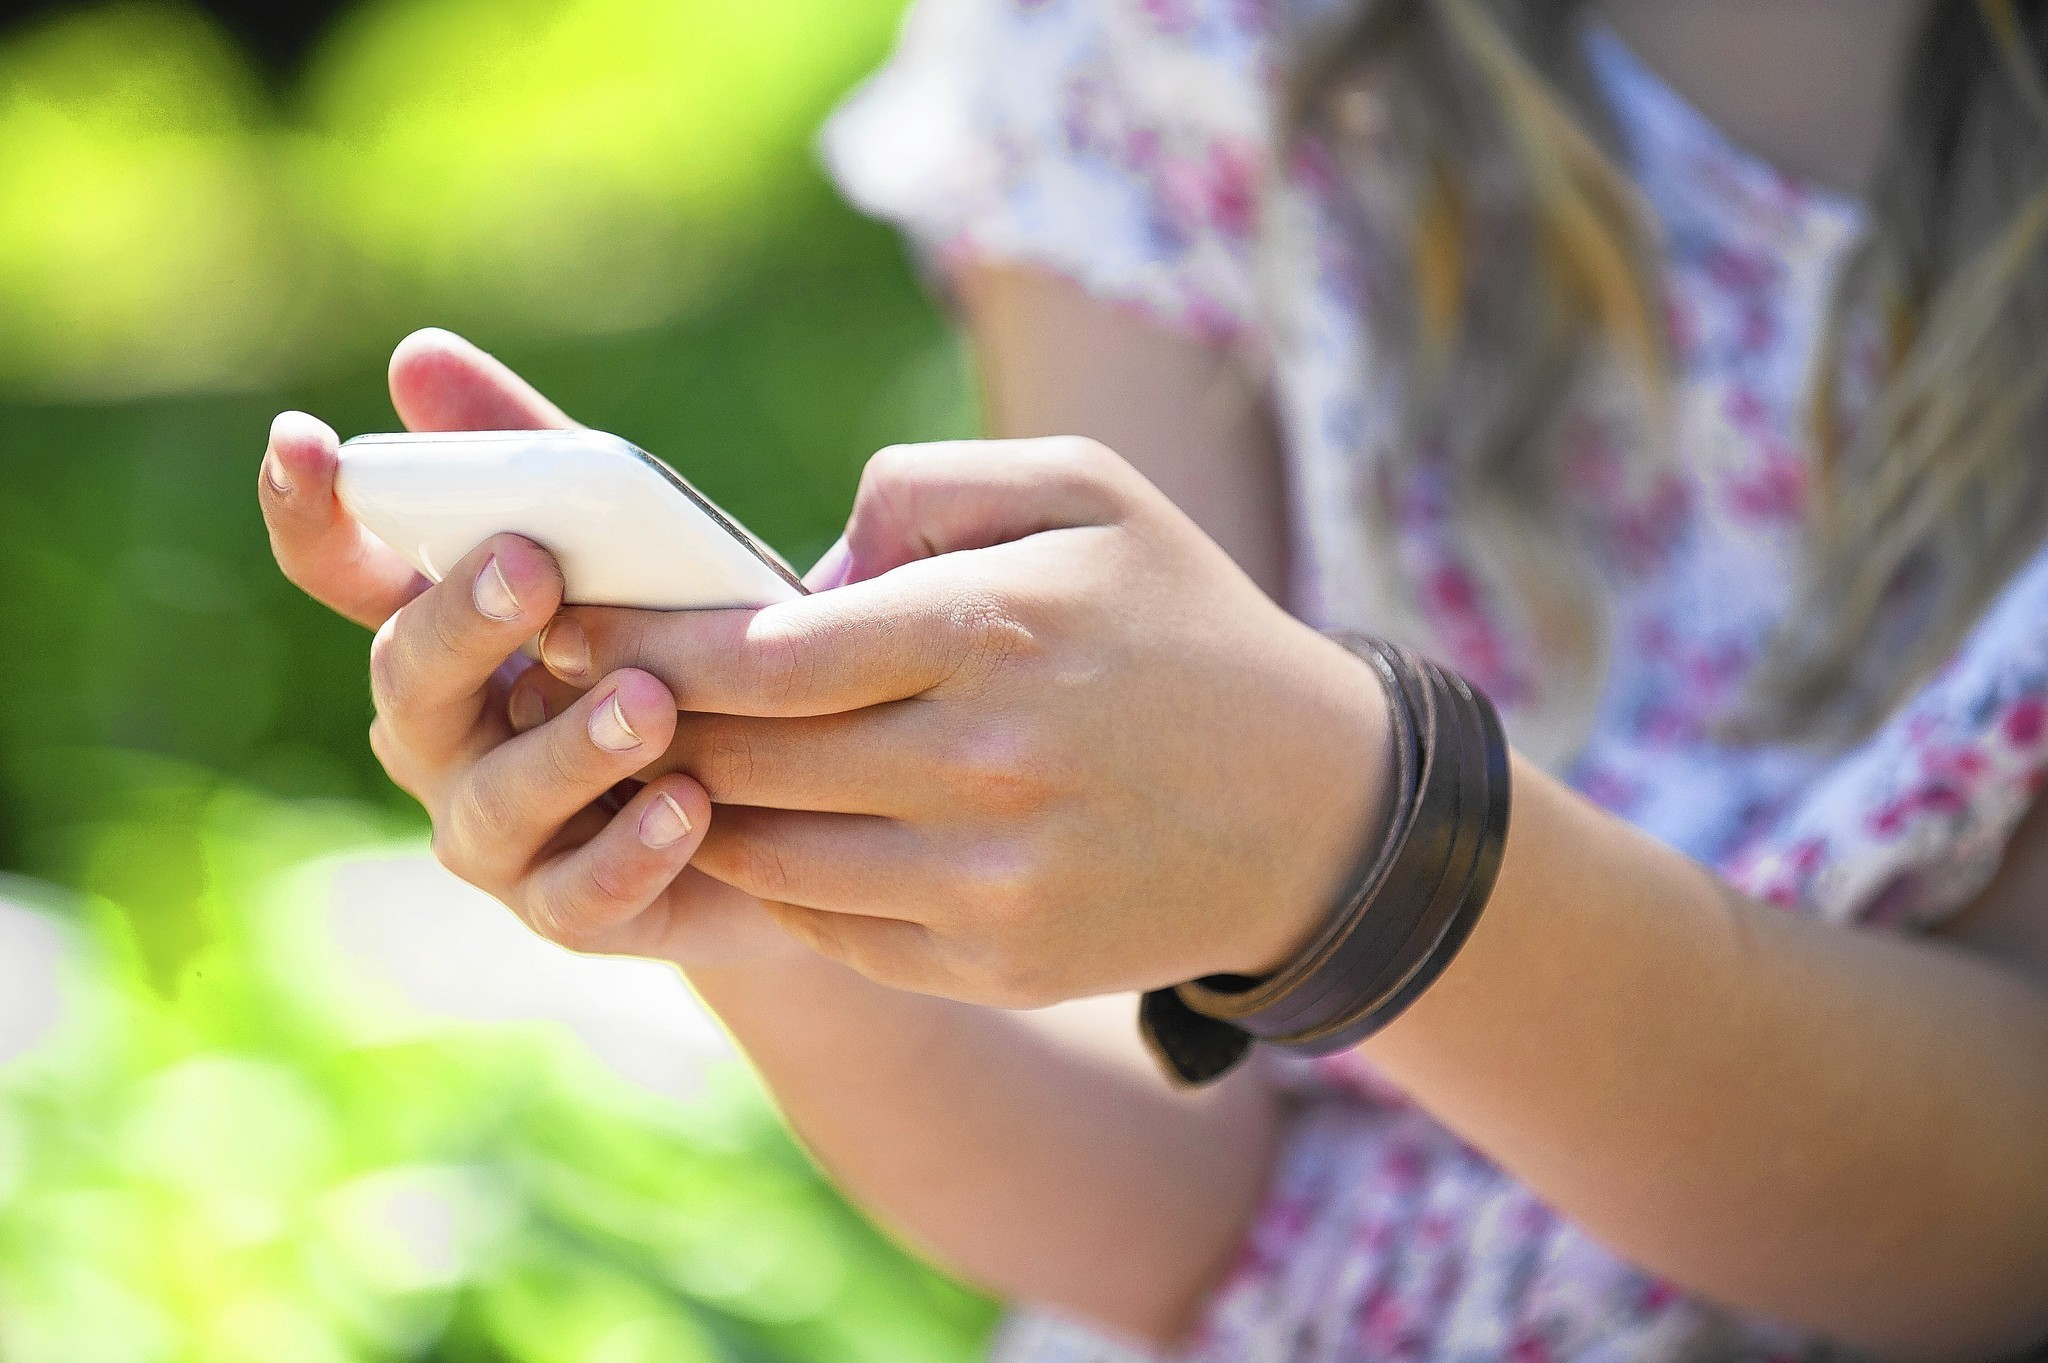 get paid to sexting